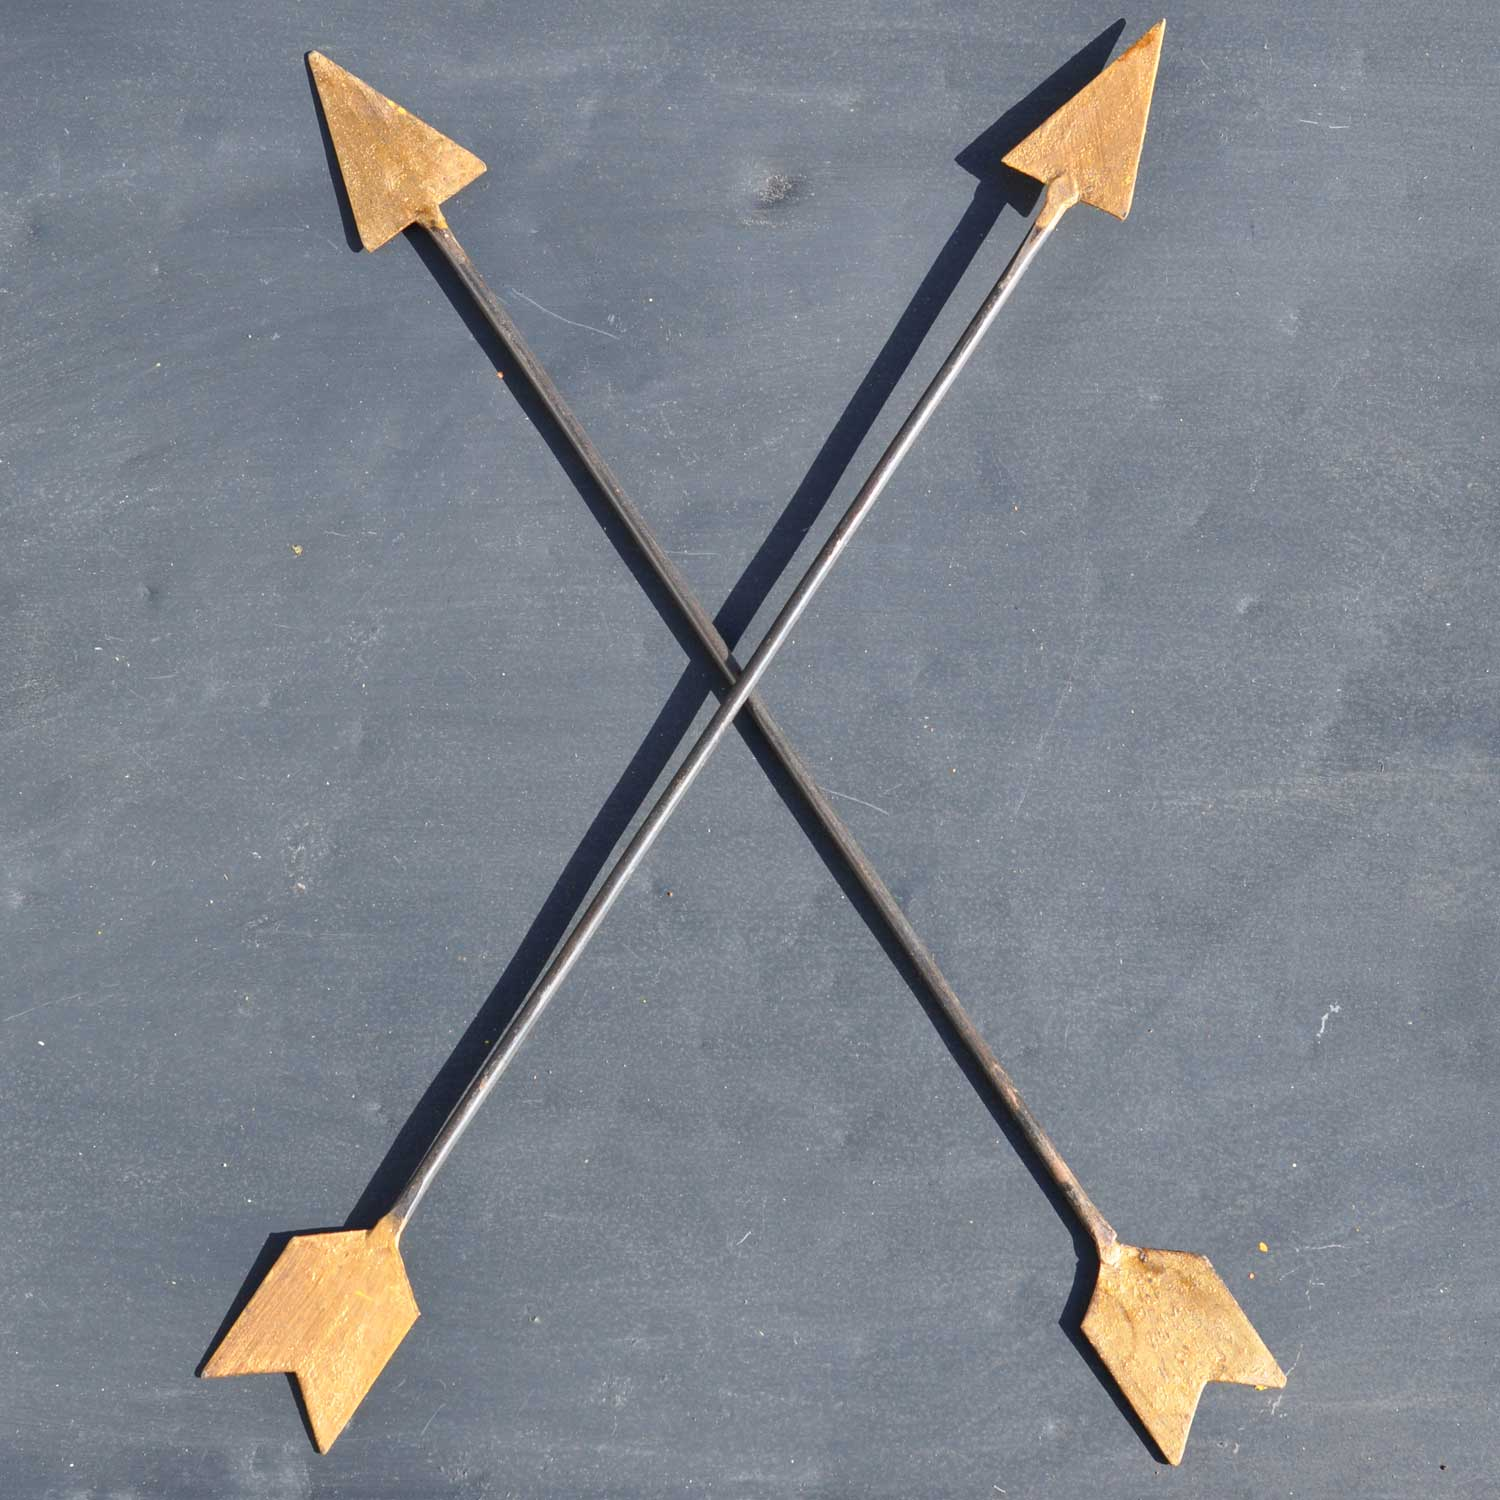 Arrows For Wall Decor : Vintage inspired metal arrow wall art home decor